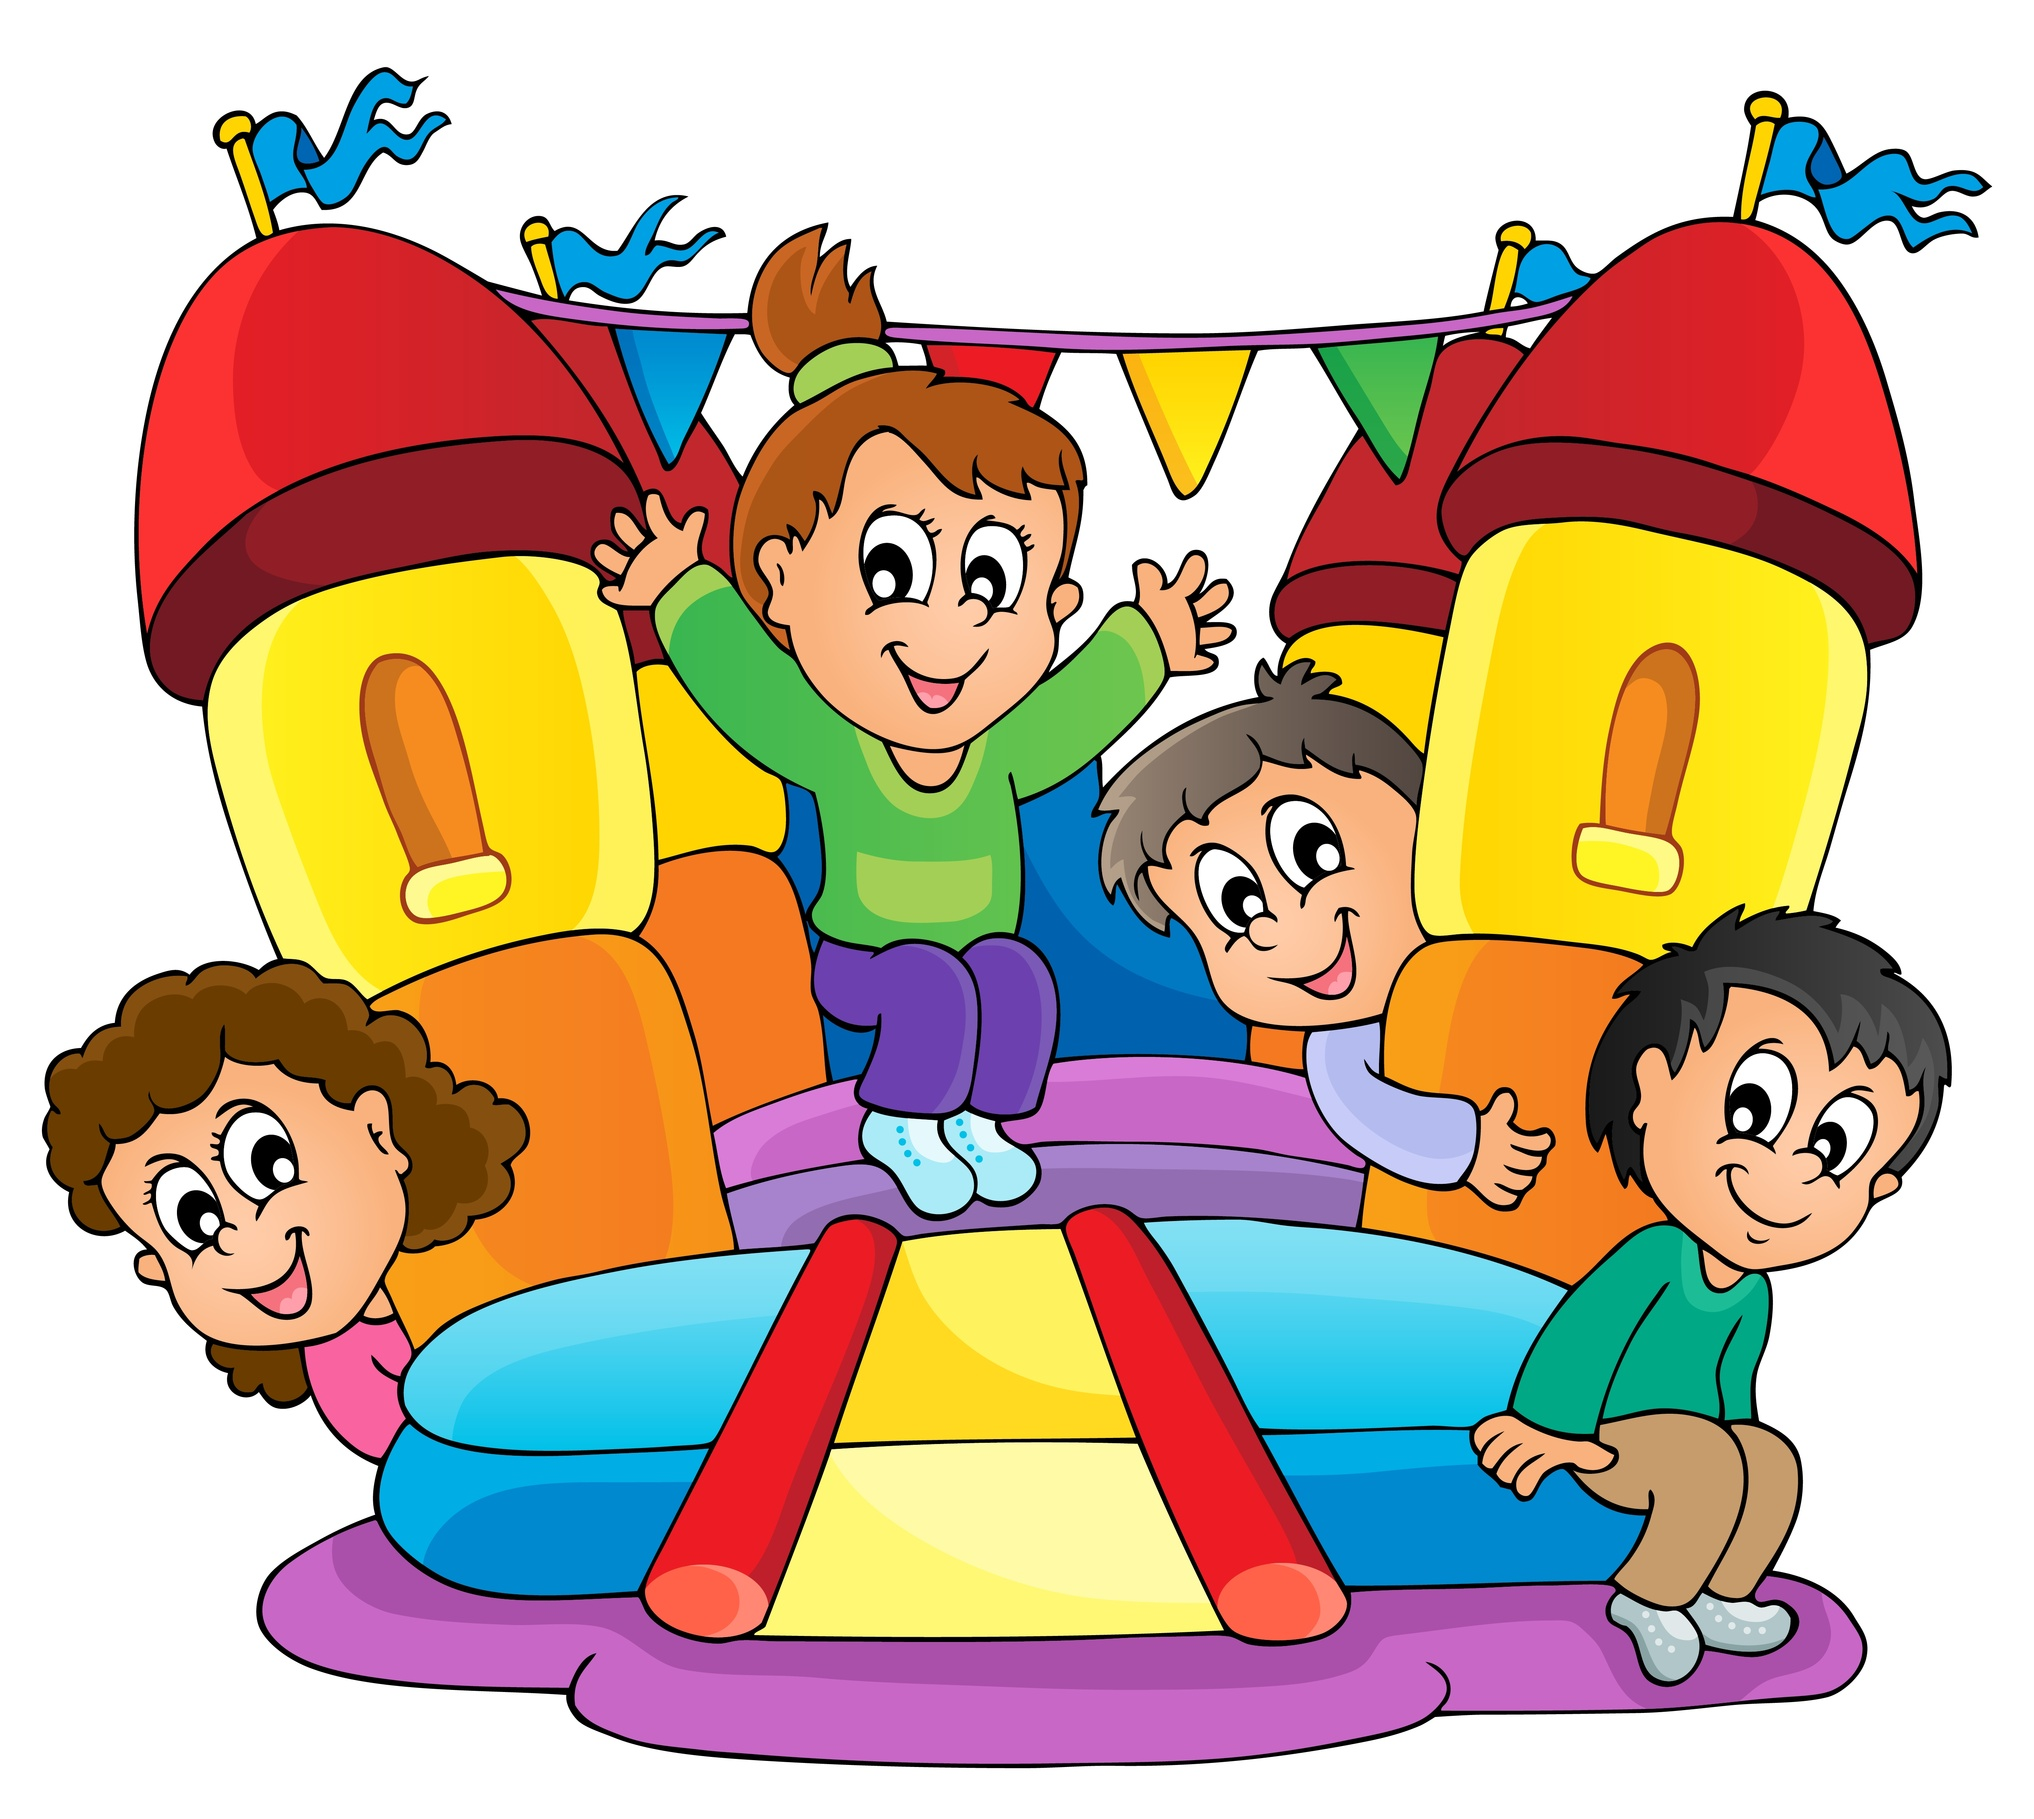 free bounce house clipart - photo #20